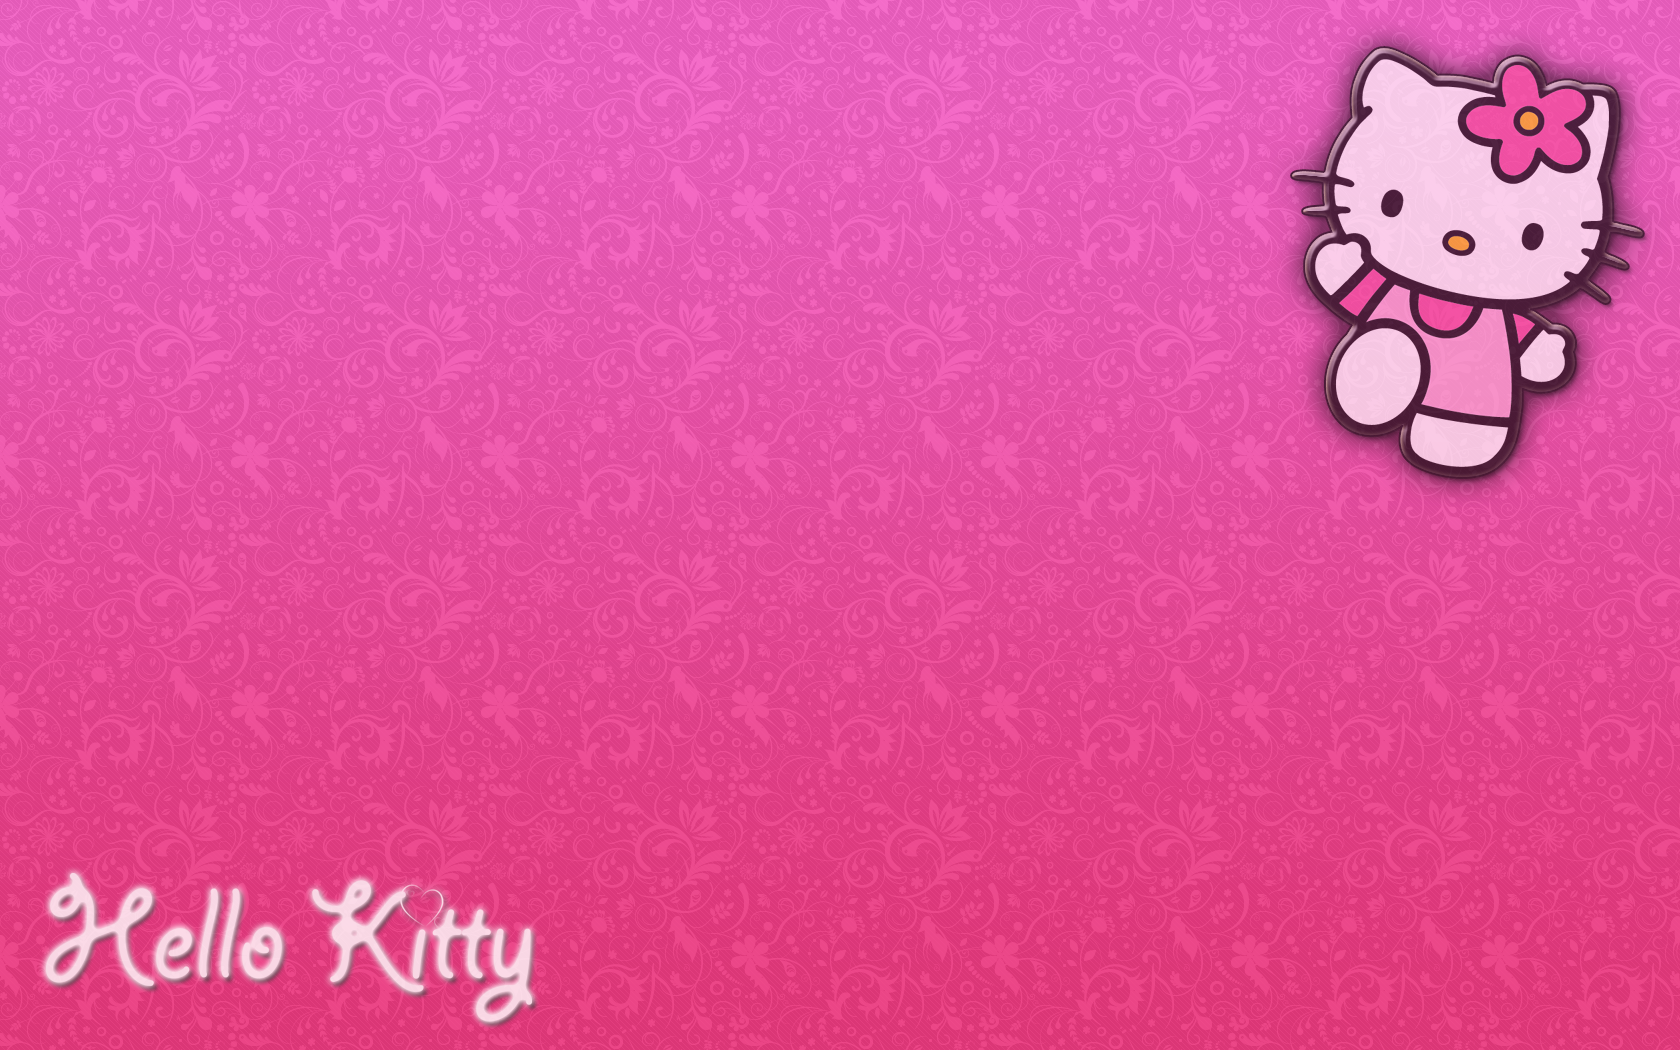 Hello Kitty Cute Backgrounds Wallpaper Wide ImageBankbiz 1680x1050